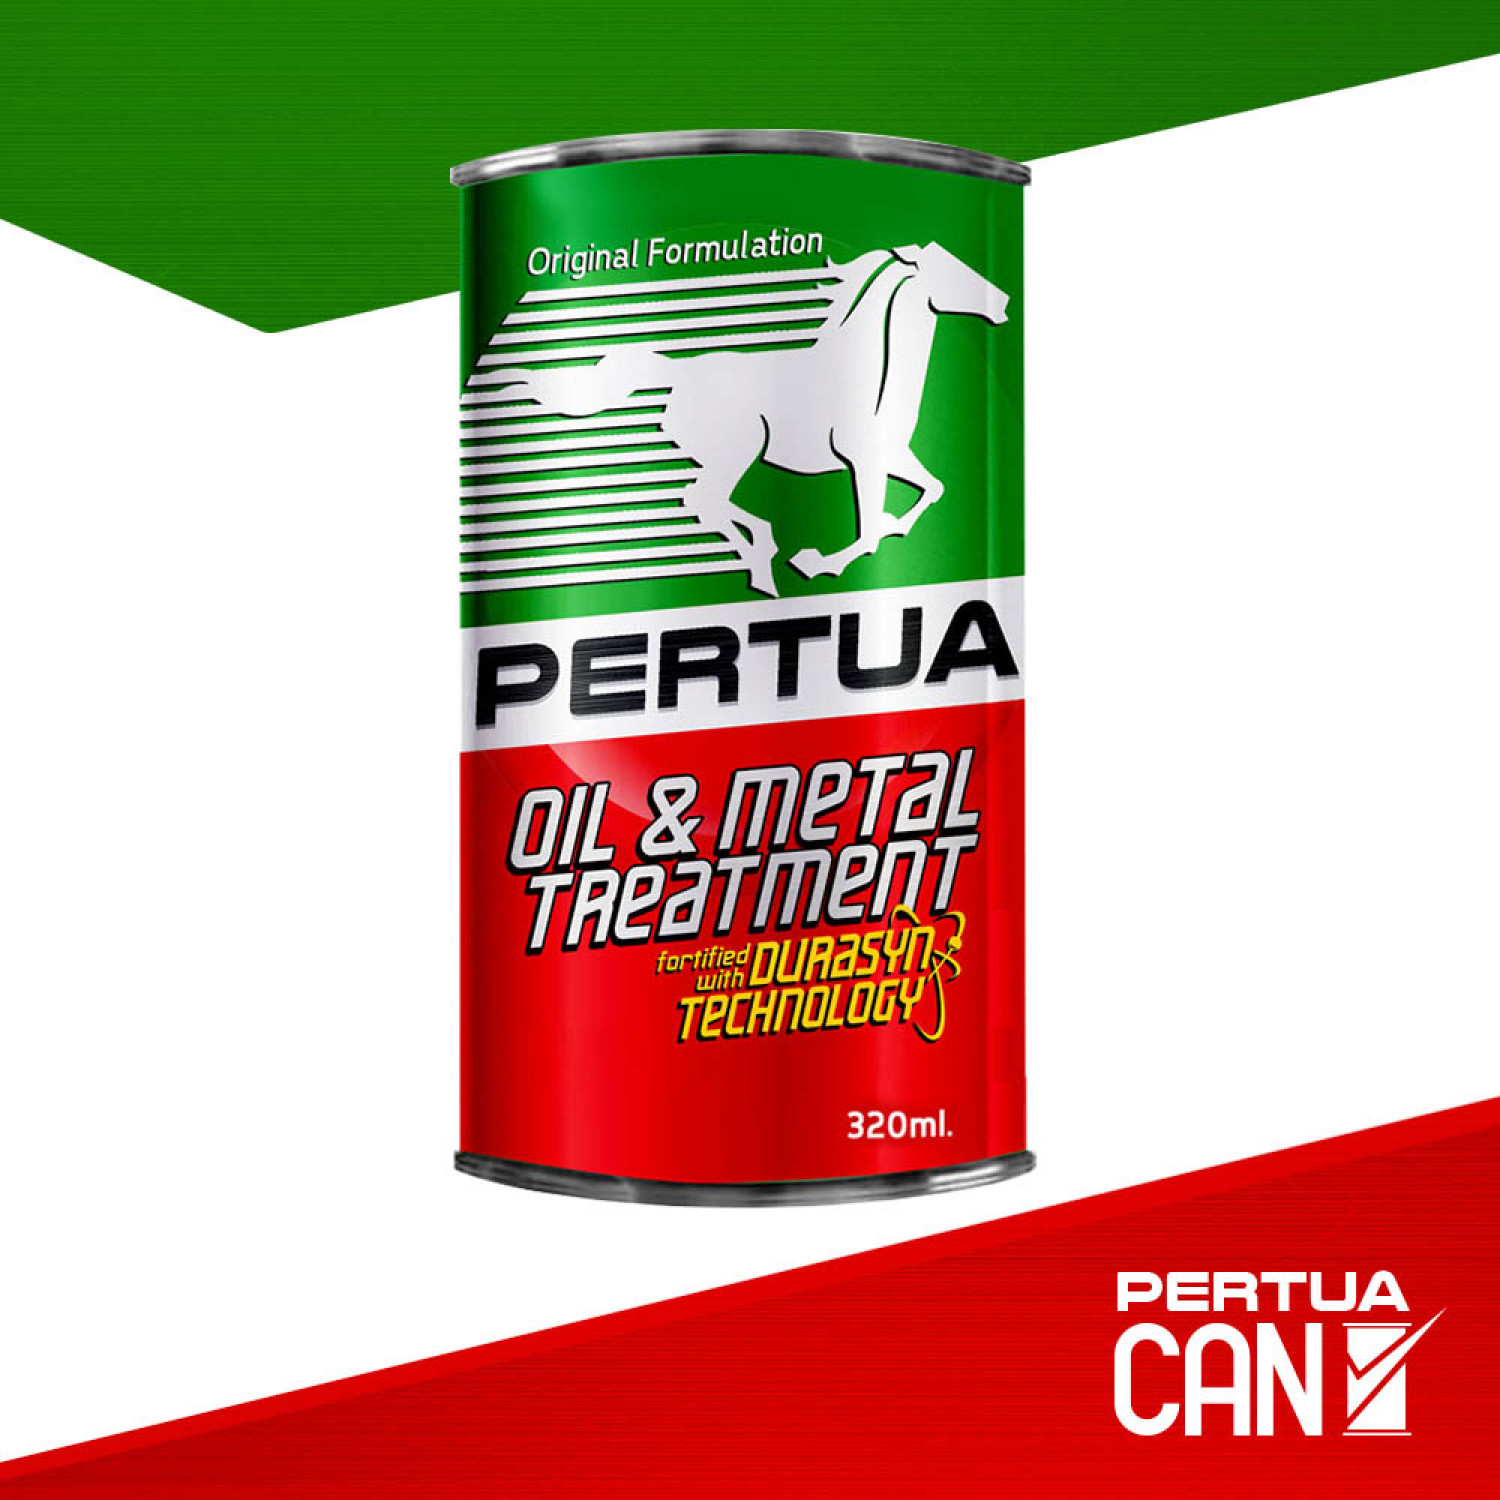 PERTUA OIL AND METAL TREATMENT 320ML Infographic